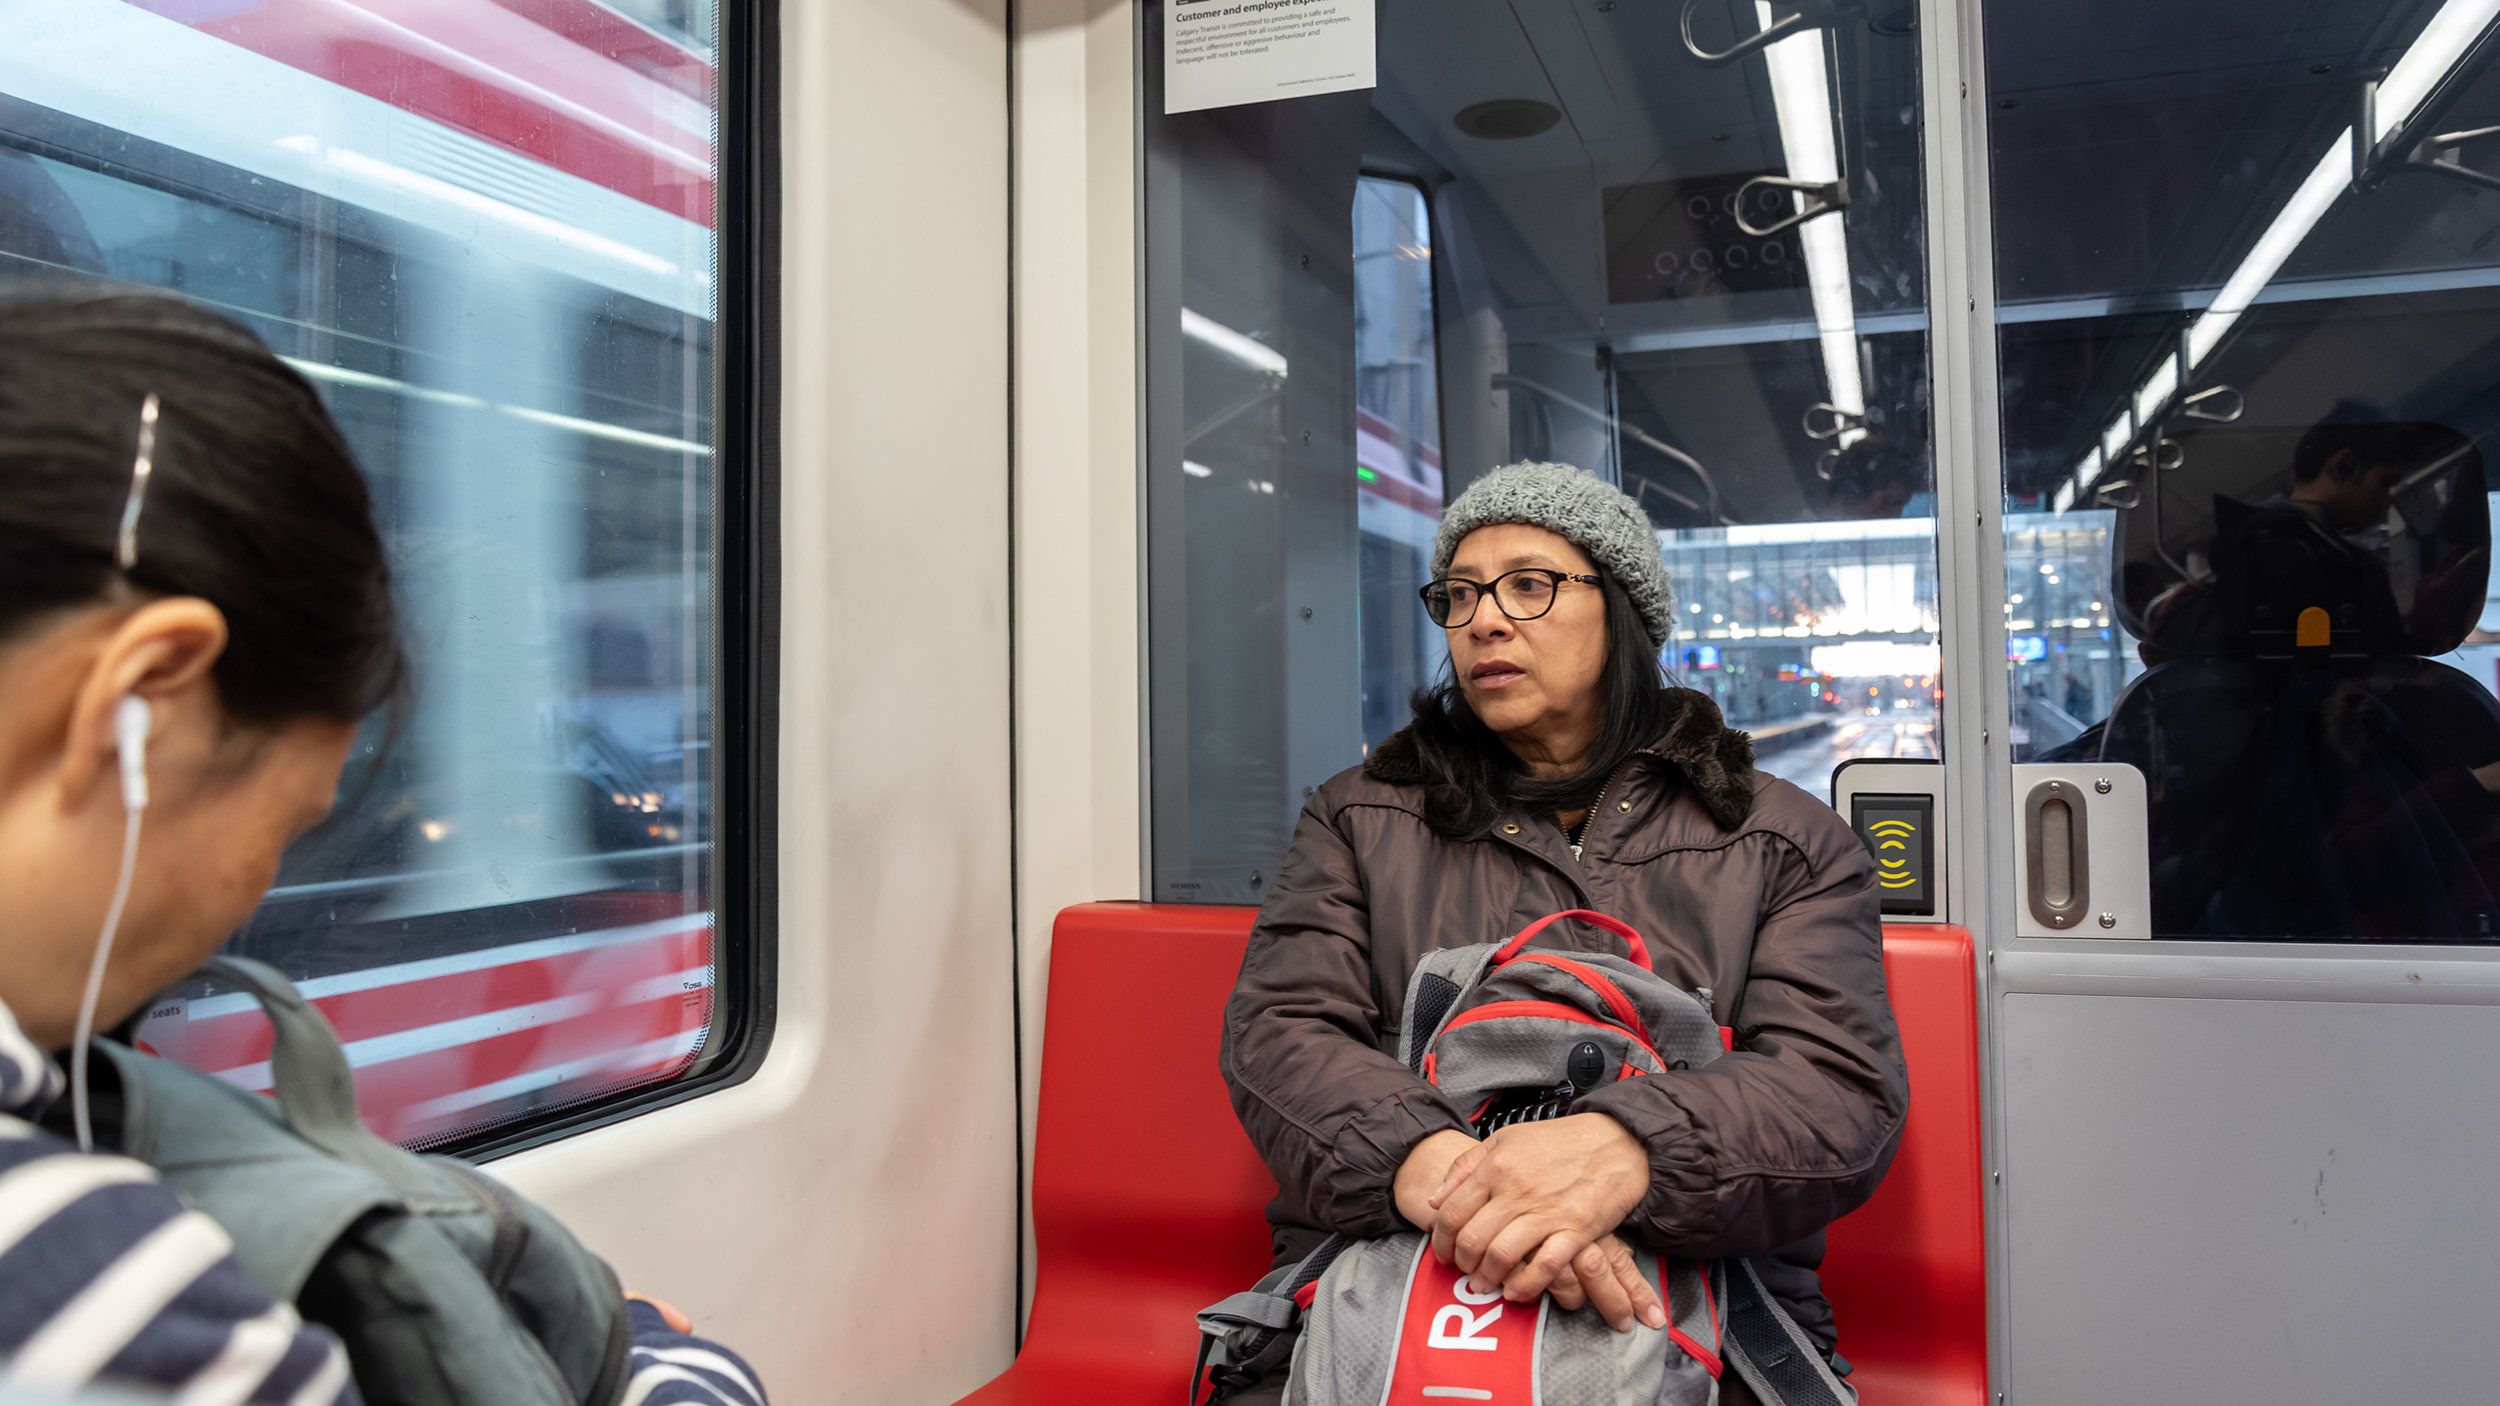 Ana Martinez, a child care worker, is photographed as she commutes to her job at Wee Wild Ones Day Care in Calgary on Wednesday, March 27, 2019. Martinez, 61, has worked in child care for 15 years and she plans to retire later this year. (Photo by Jacob MacPherson/SAIT)